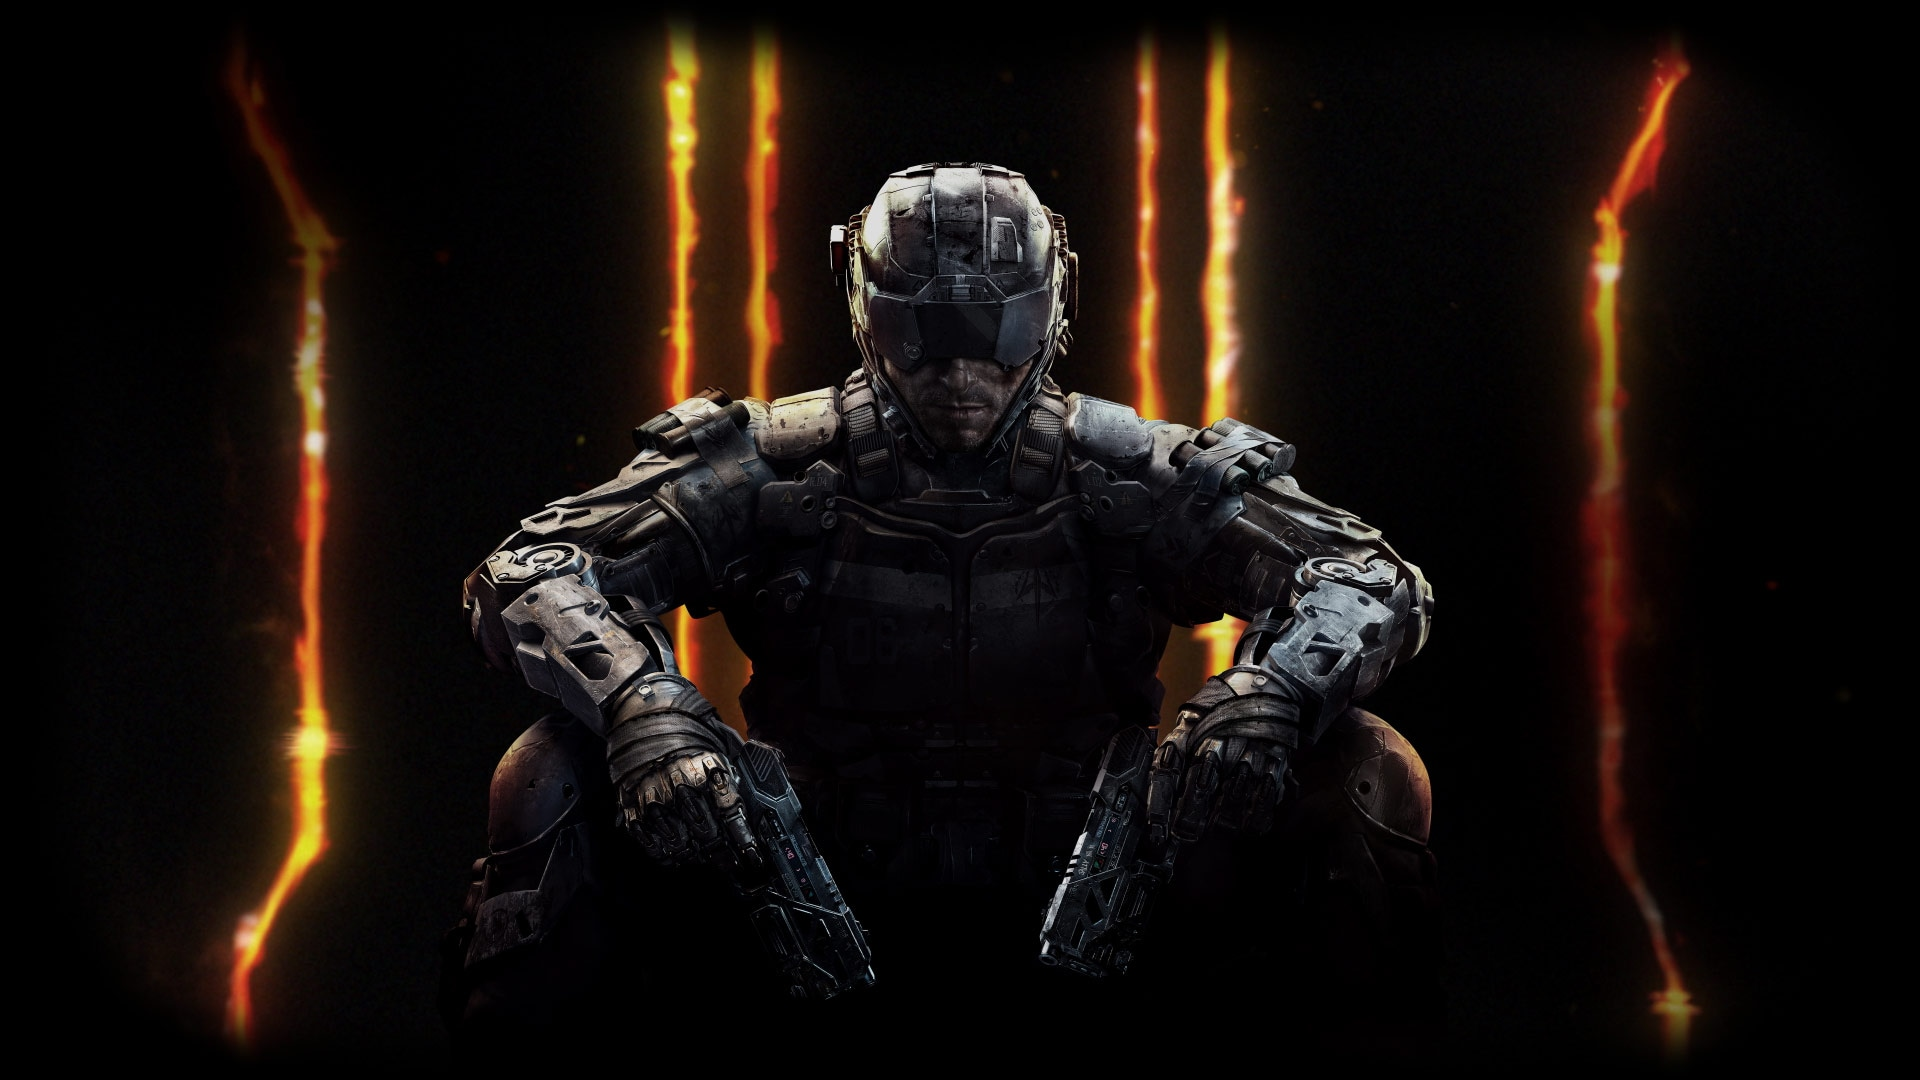 Black Ops 3 Wallpaper Iphone 6 Call Of Duty Black Ops Iii Wallpapers Pictures Images